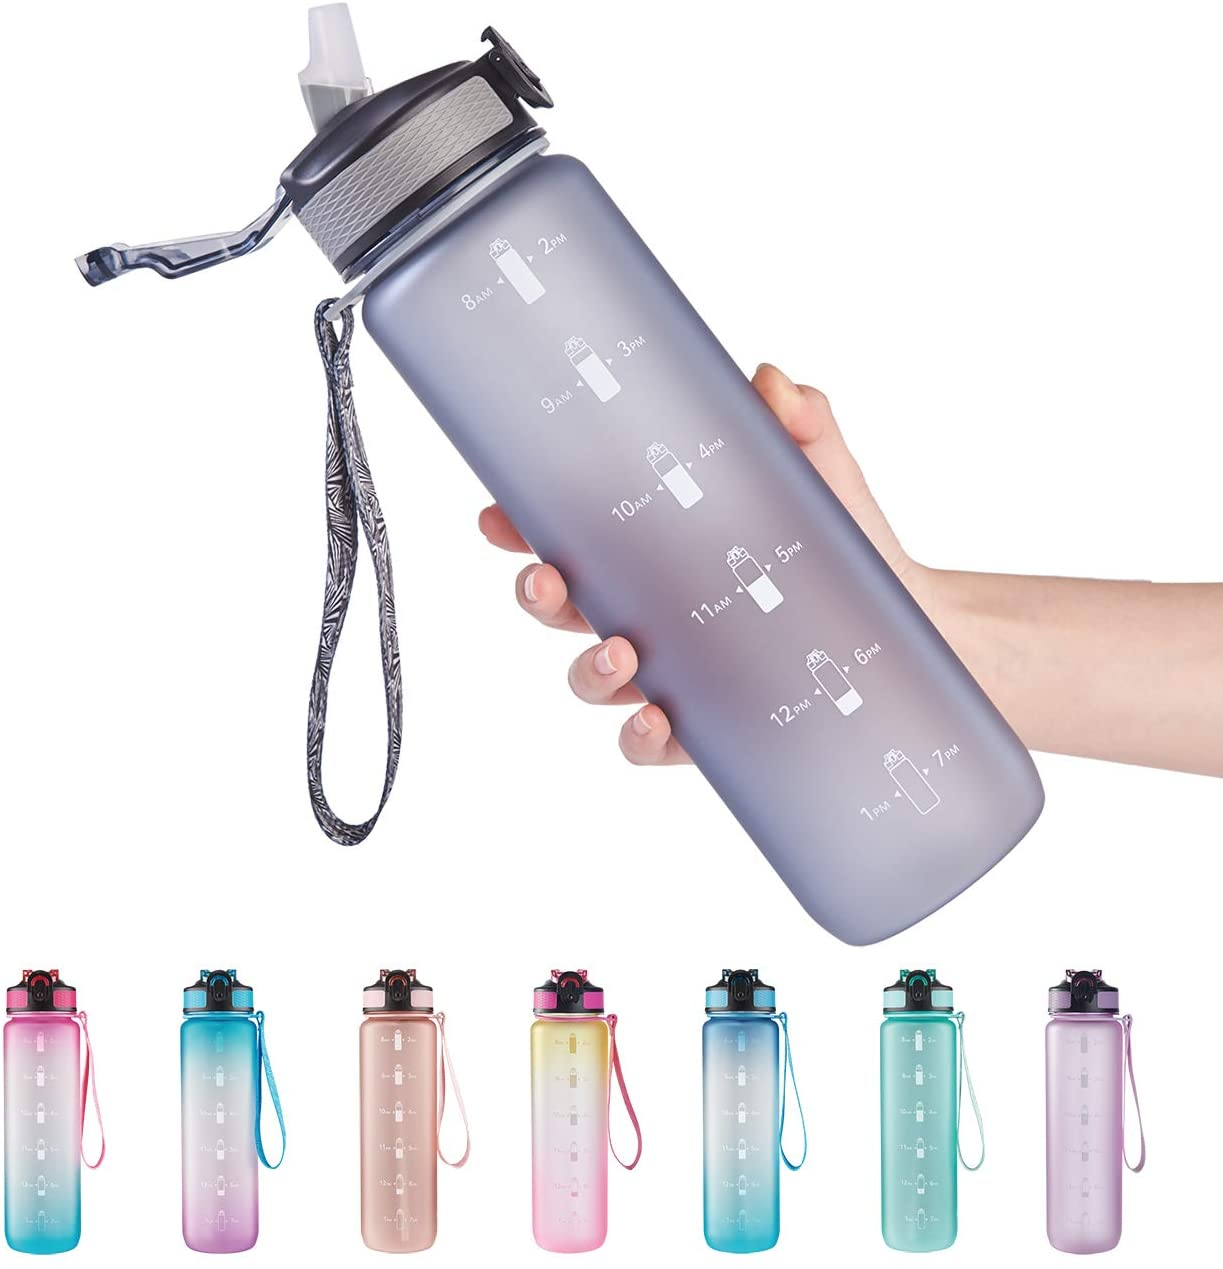 EYQ 32 oz Water Bottle with Time Marker, Carry Strap, Leak-Proof Tritan BPA-Free, Ensure You Drink Enough Water for Fitness, Gym, Camping, Outdoor Sports